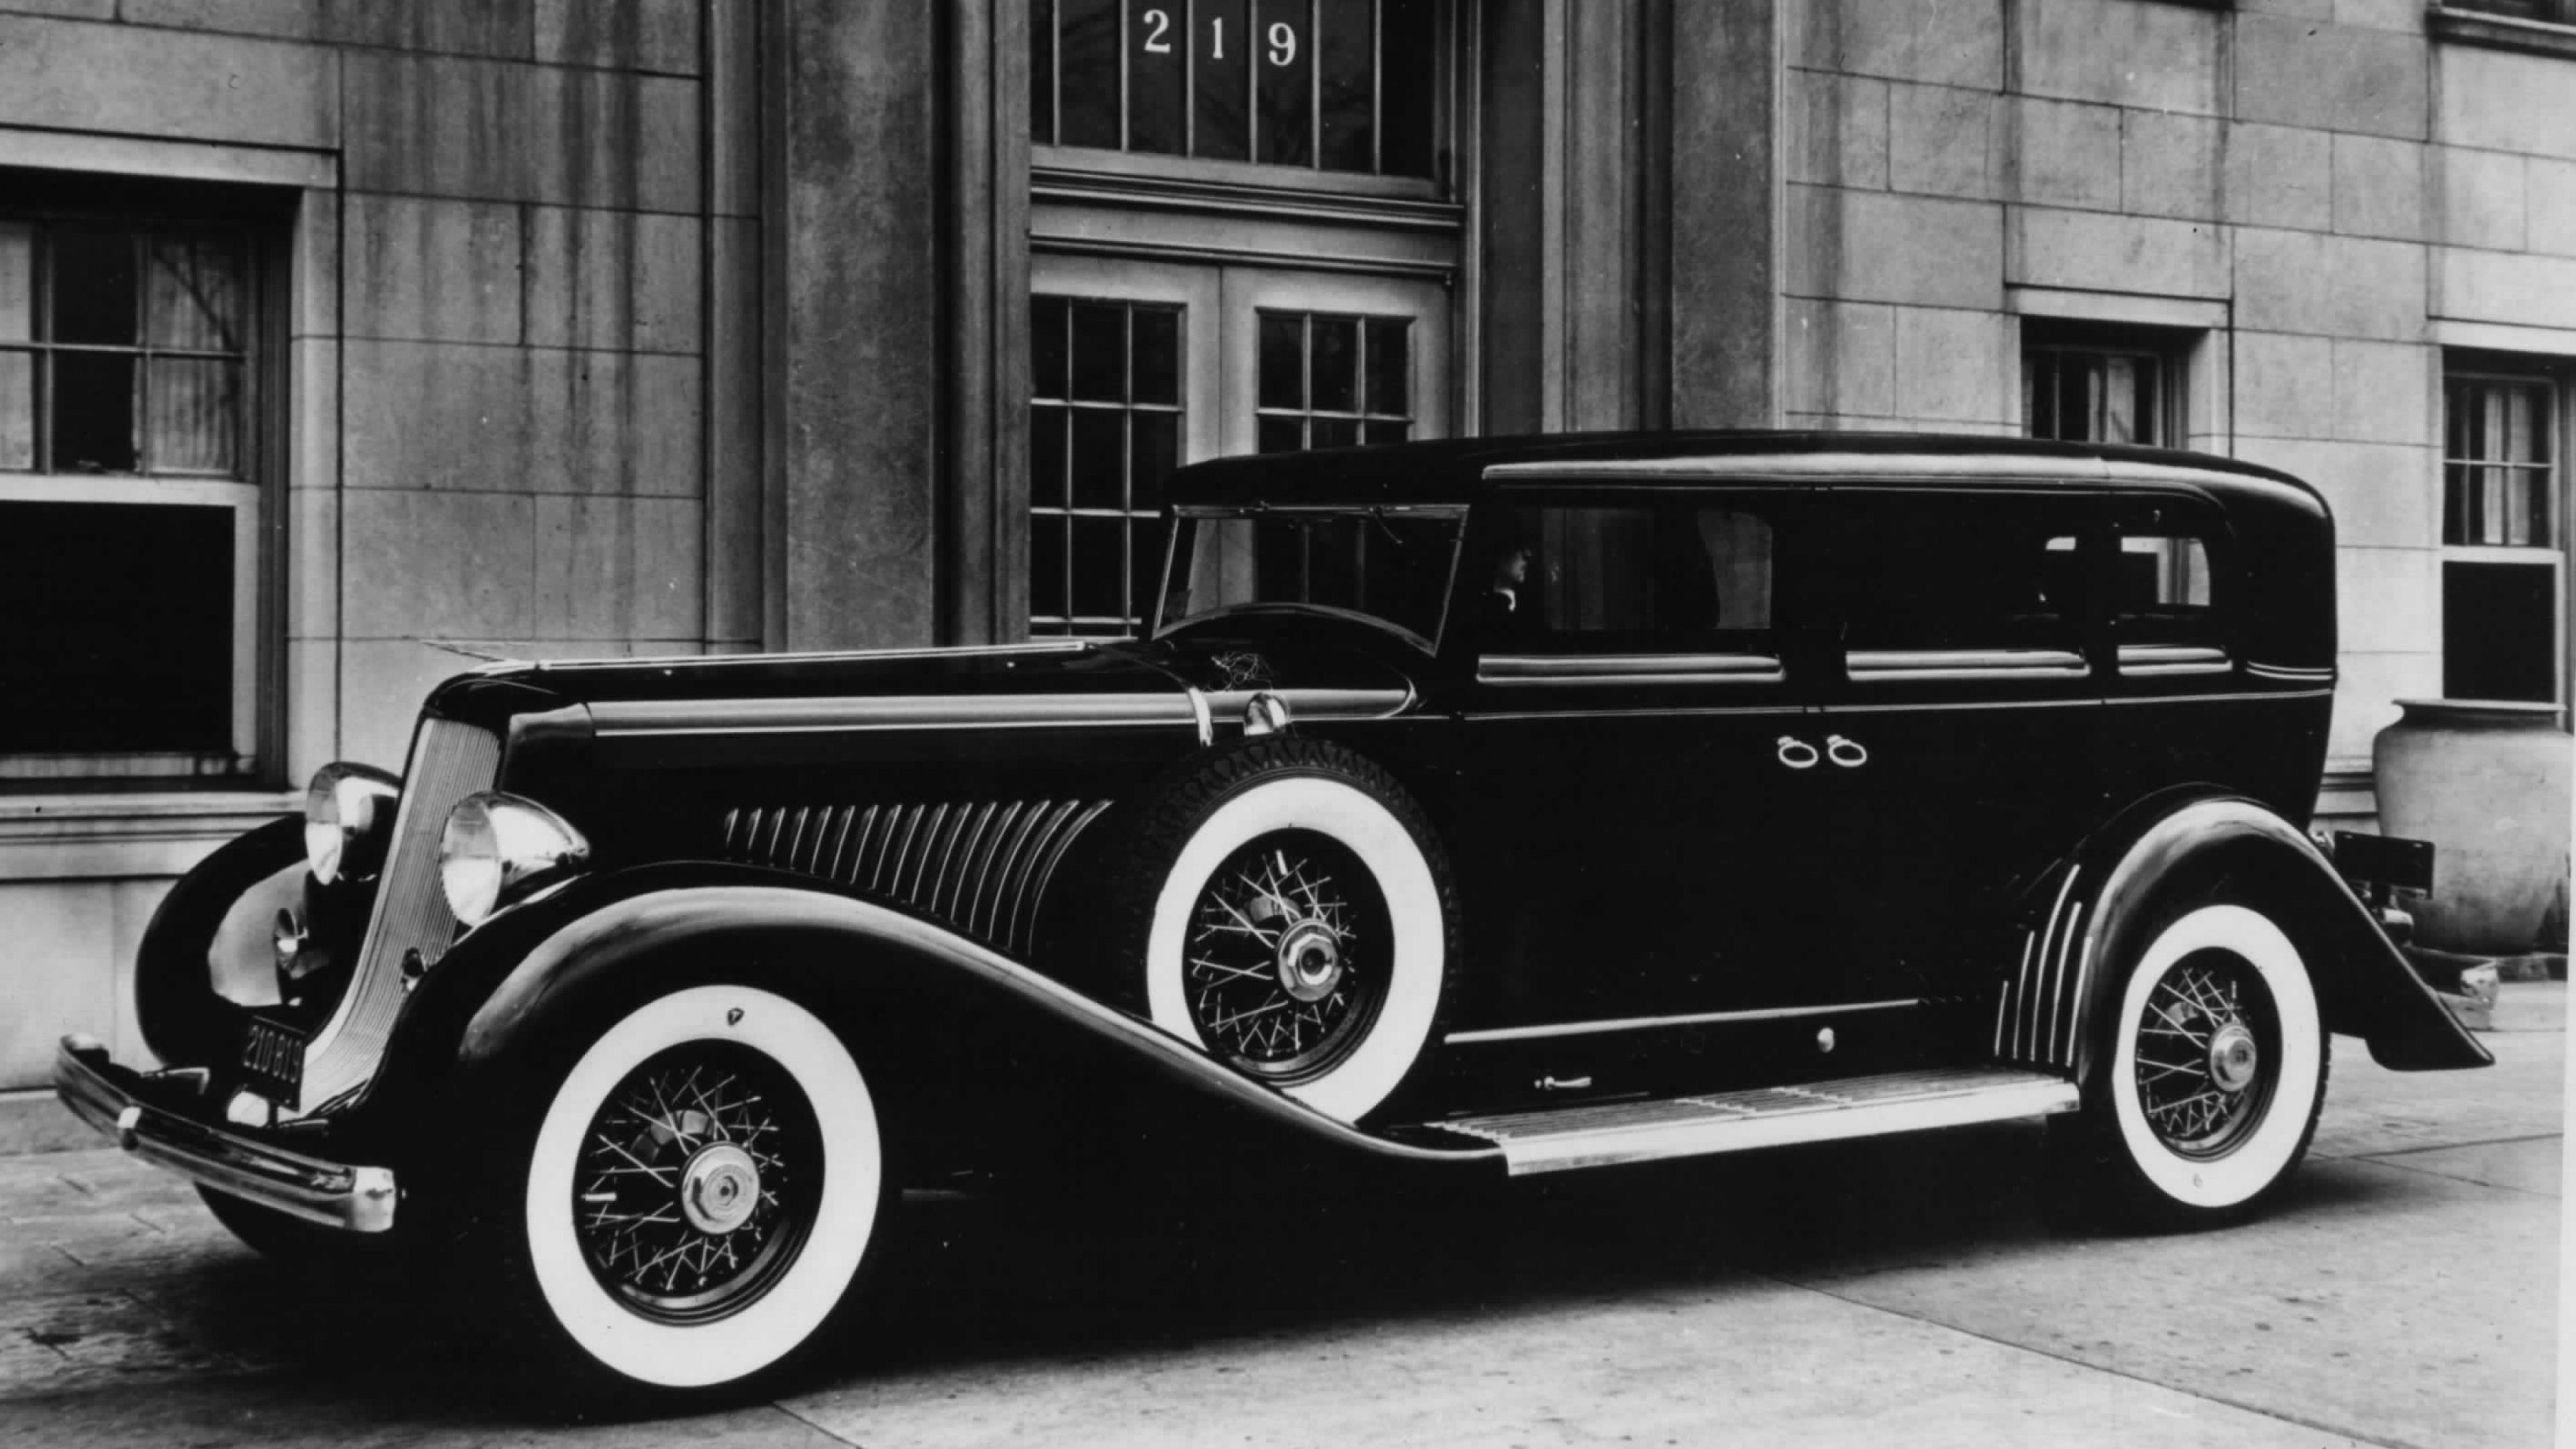 Duesenberg Car Vintage Black White Jpg